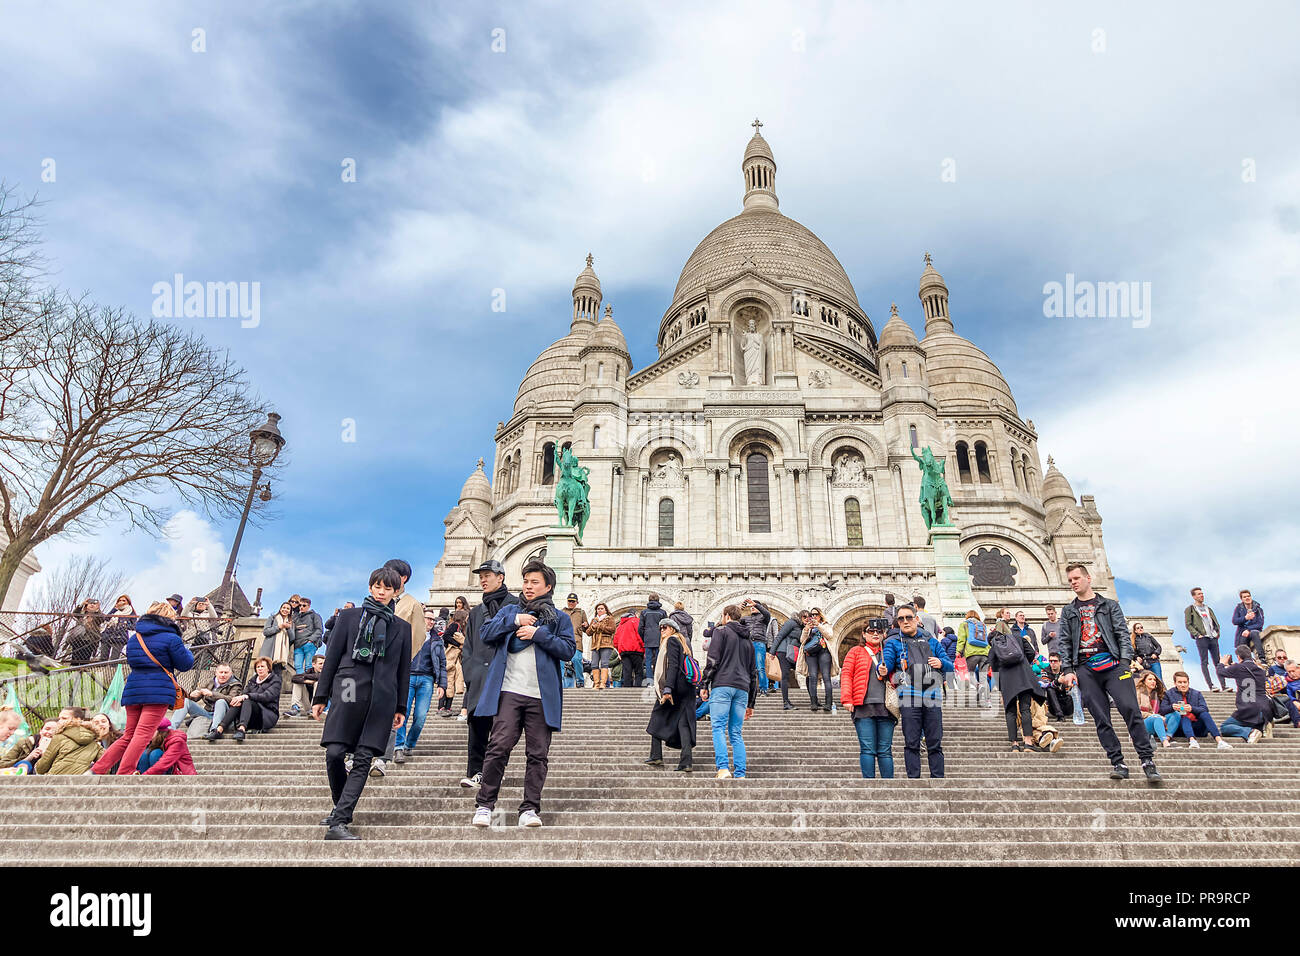 Paris, France - March 14, 2018:  The Basilica of the Sacred Heart of Paris is a Roman Catholic church and minor basilica, dedicated to the Sacred Hear Stock Photo